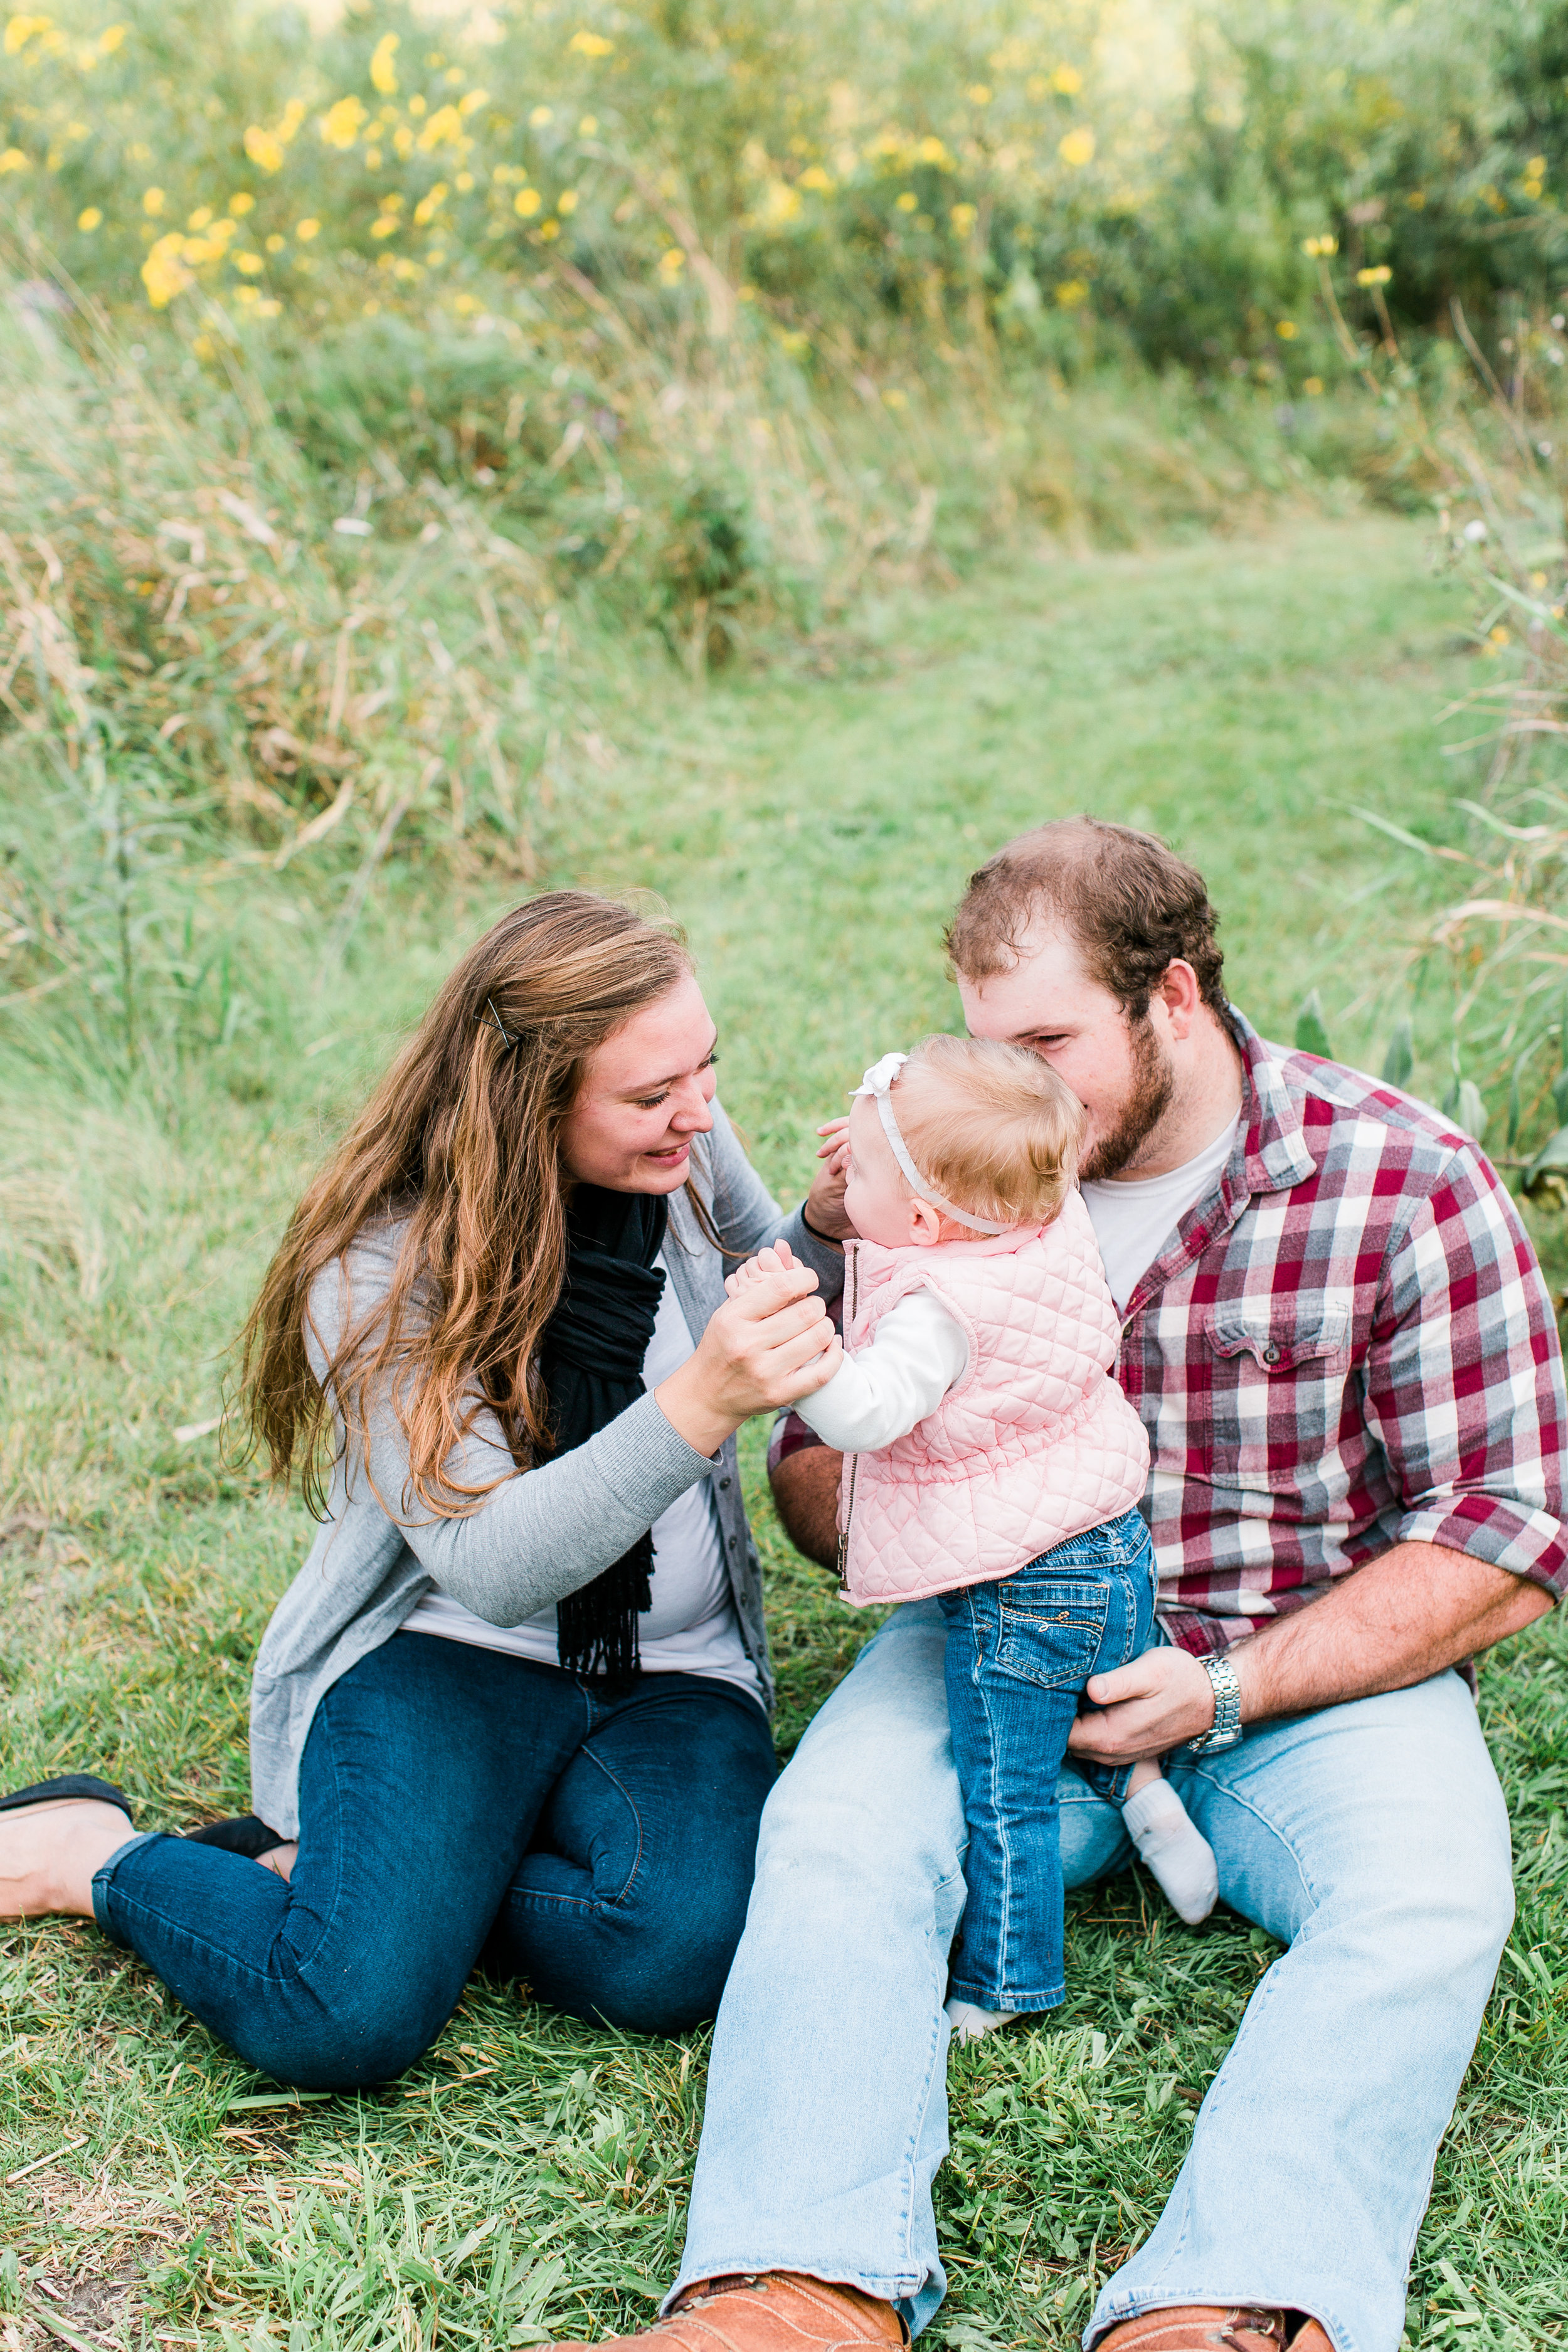 Mom, Dad, and baby sitting playing in the grass in Minnesota summer family session Minnesota family photographer Mallory Kiesow Photography